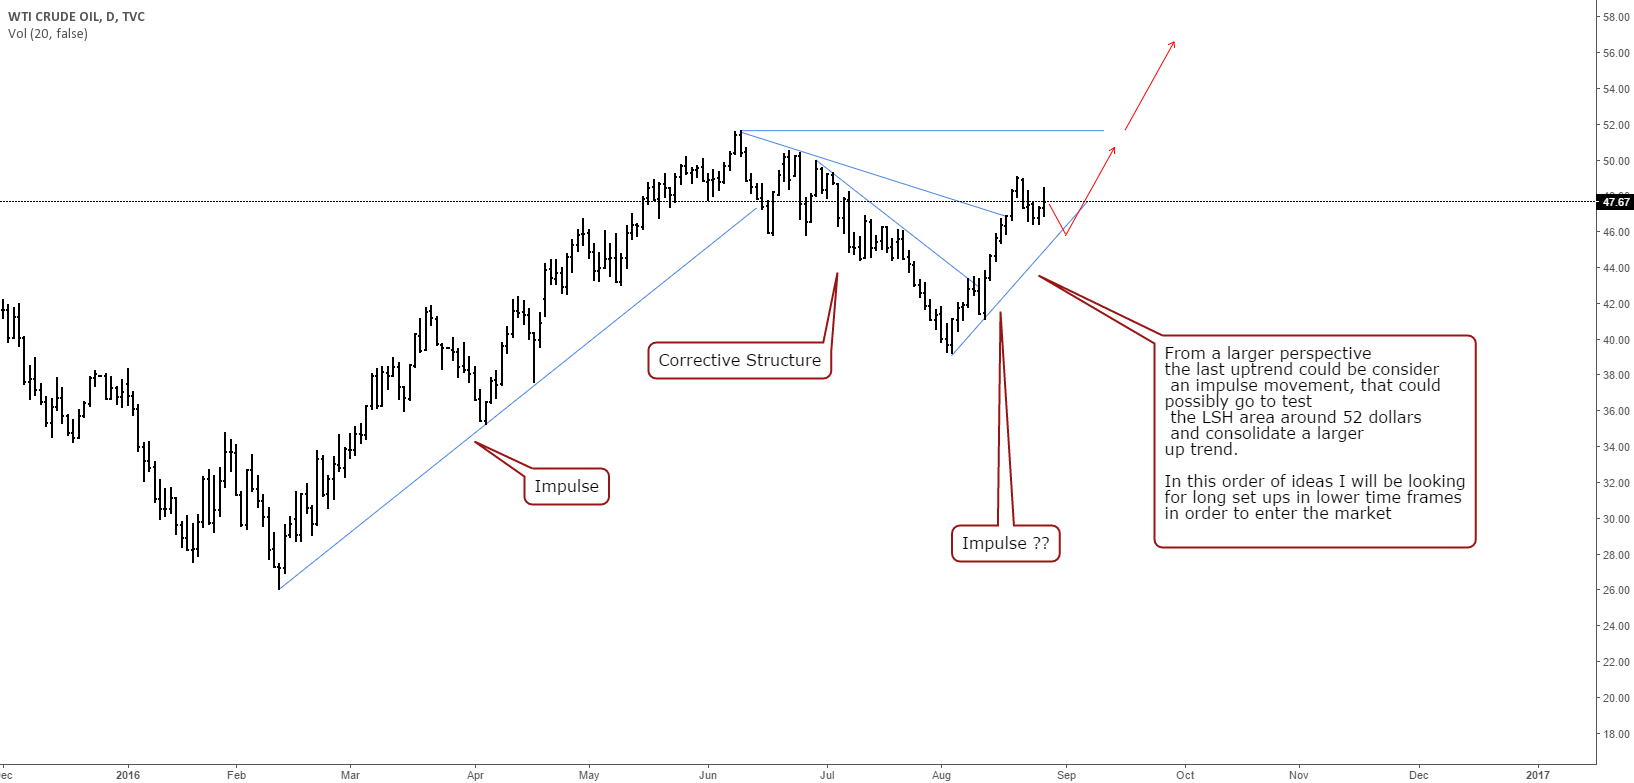 Long scenario for OIL